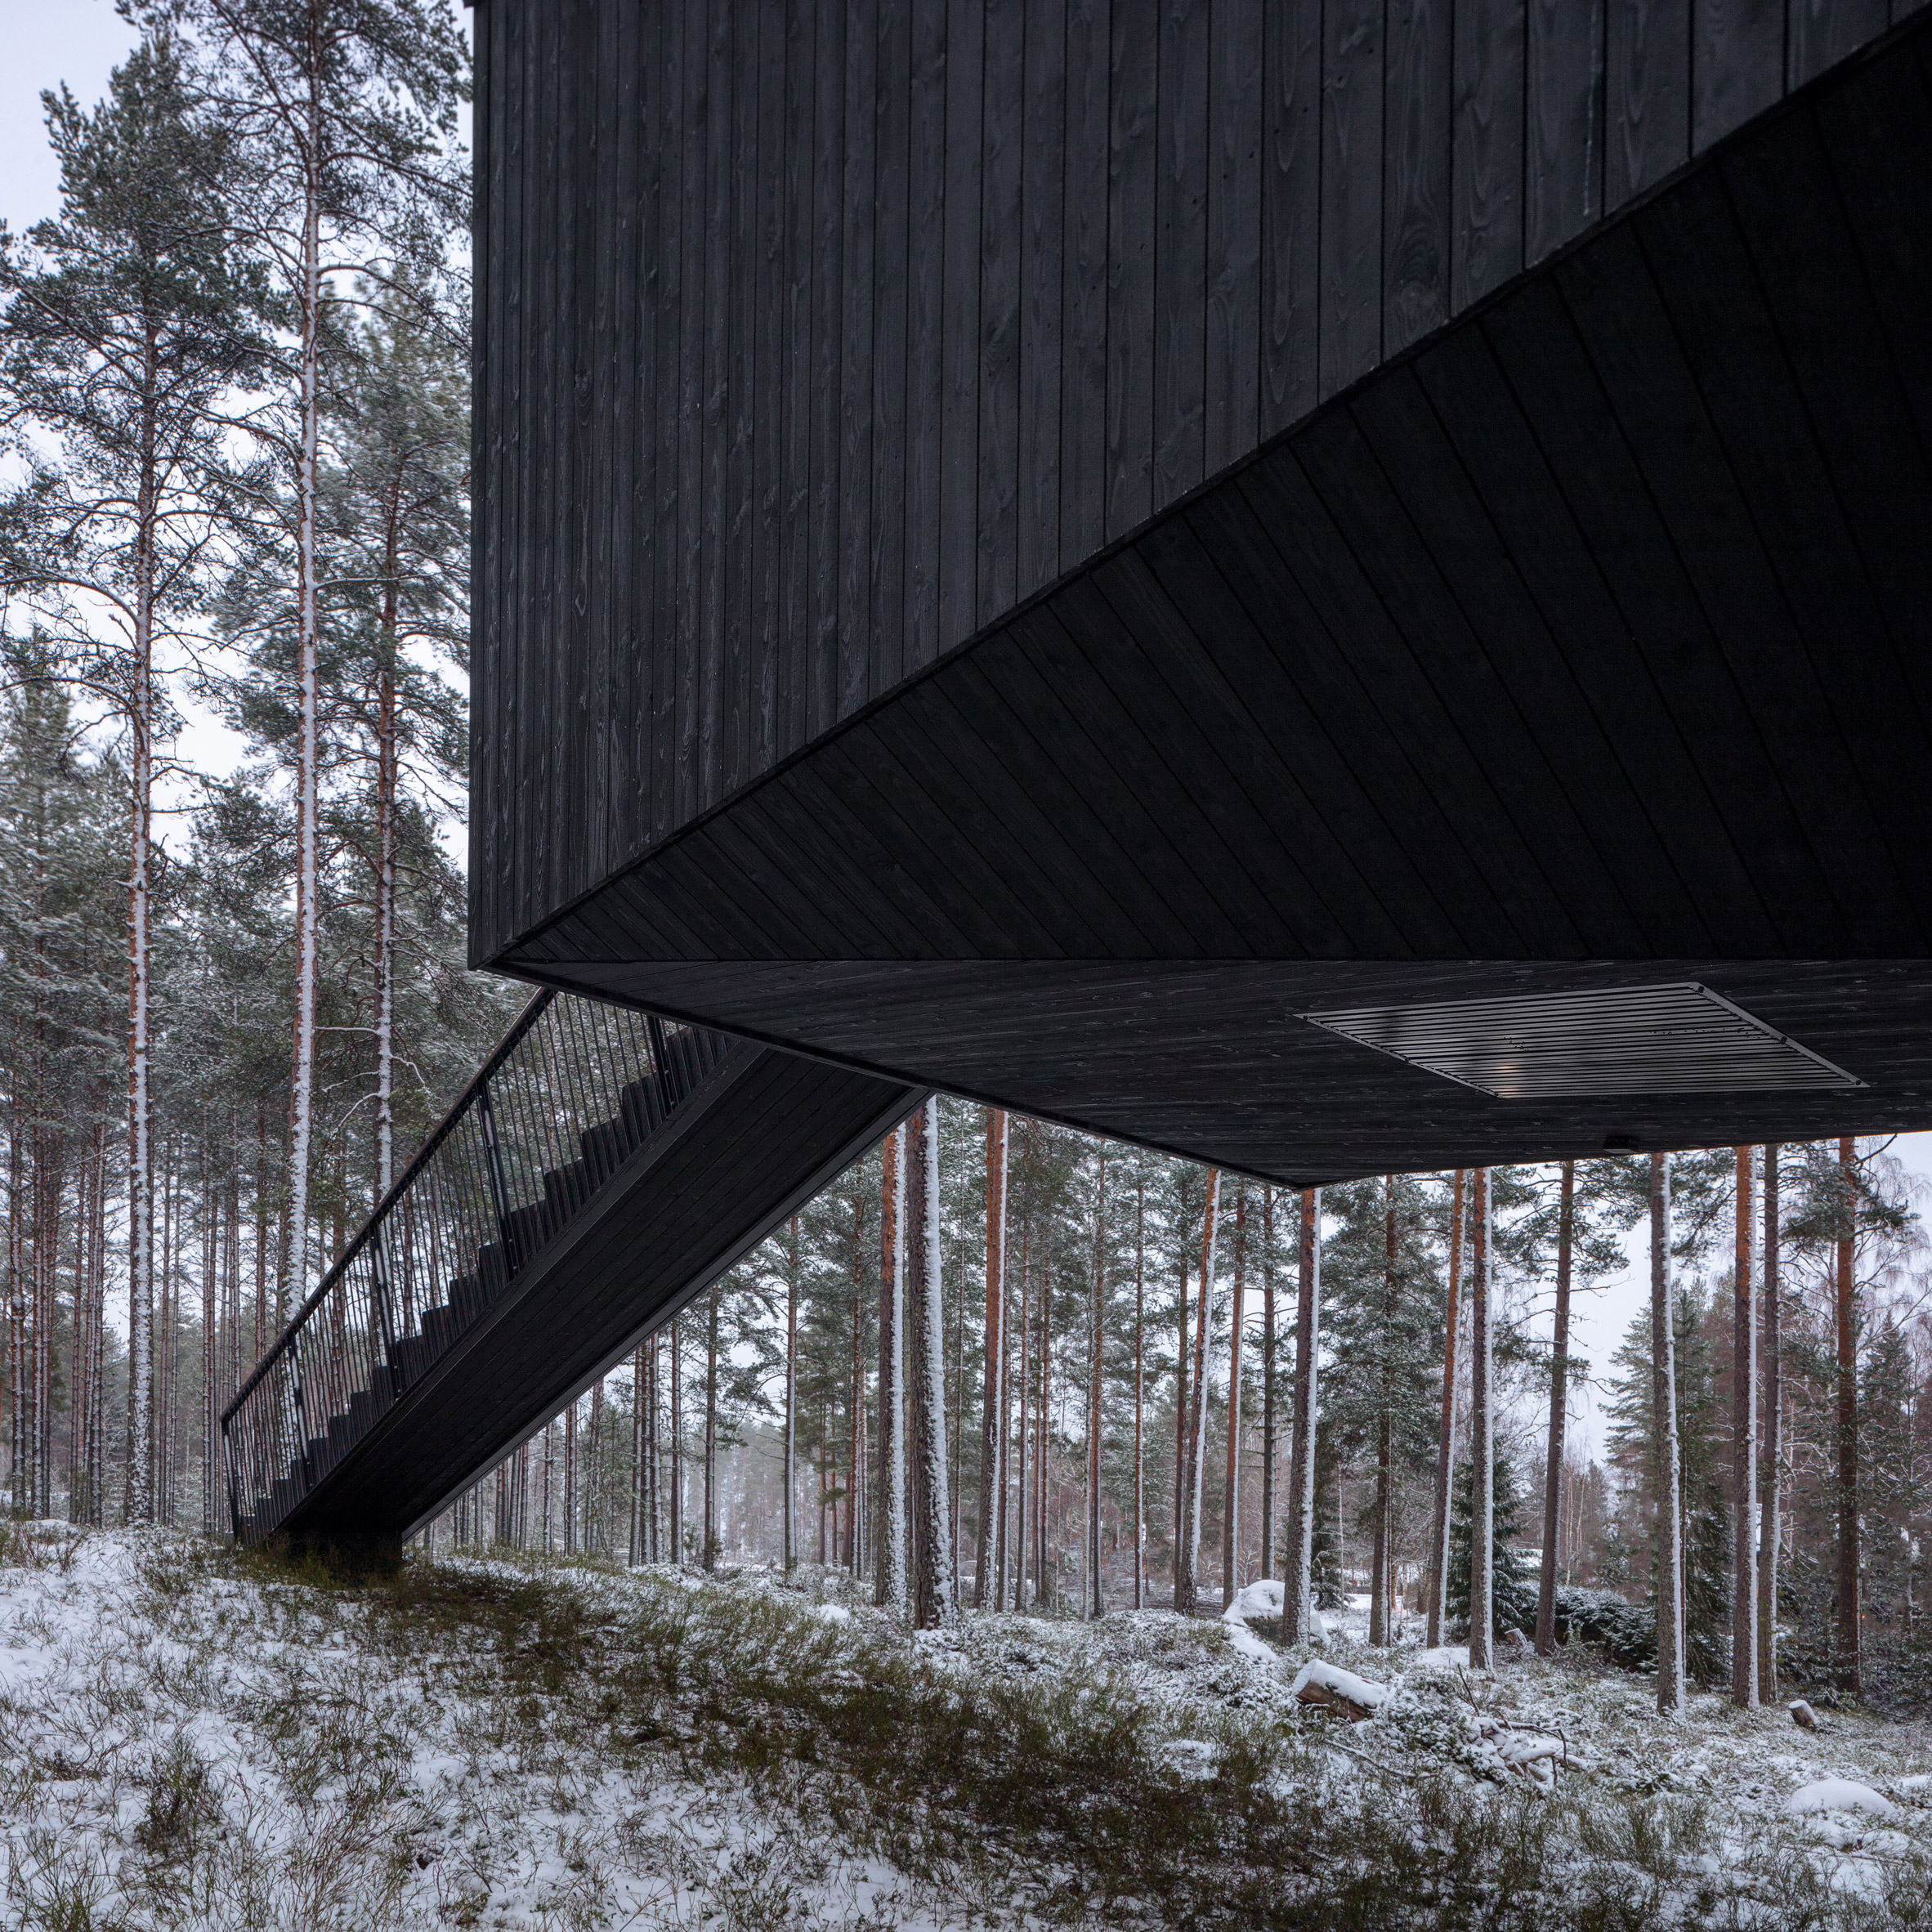 An elevated cabin with black-painted wood cladding